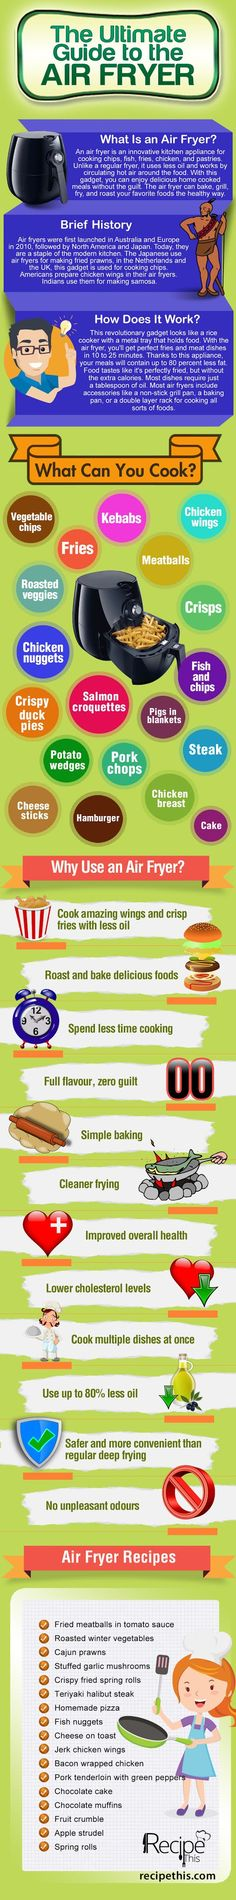 """""""the ultimate guide to the air fryer"""""""